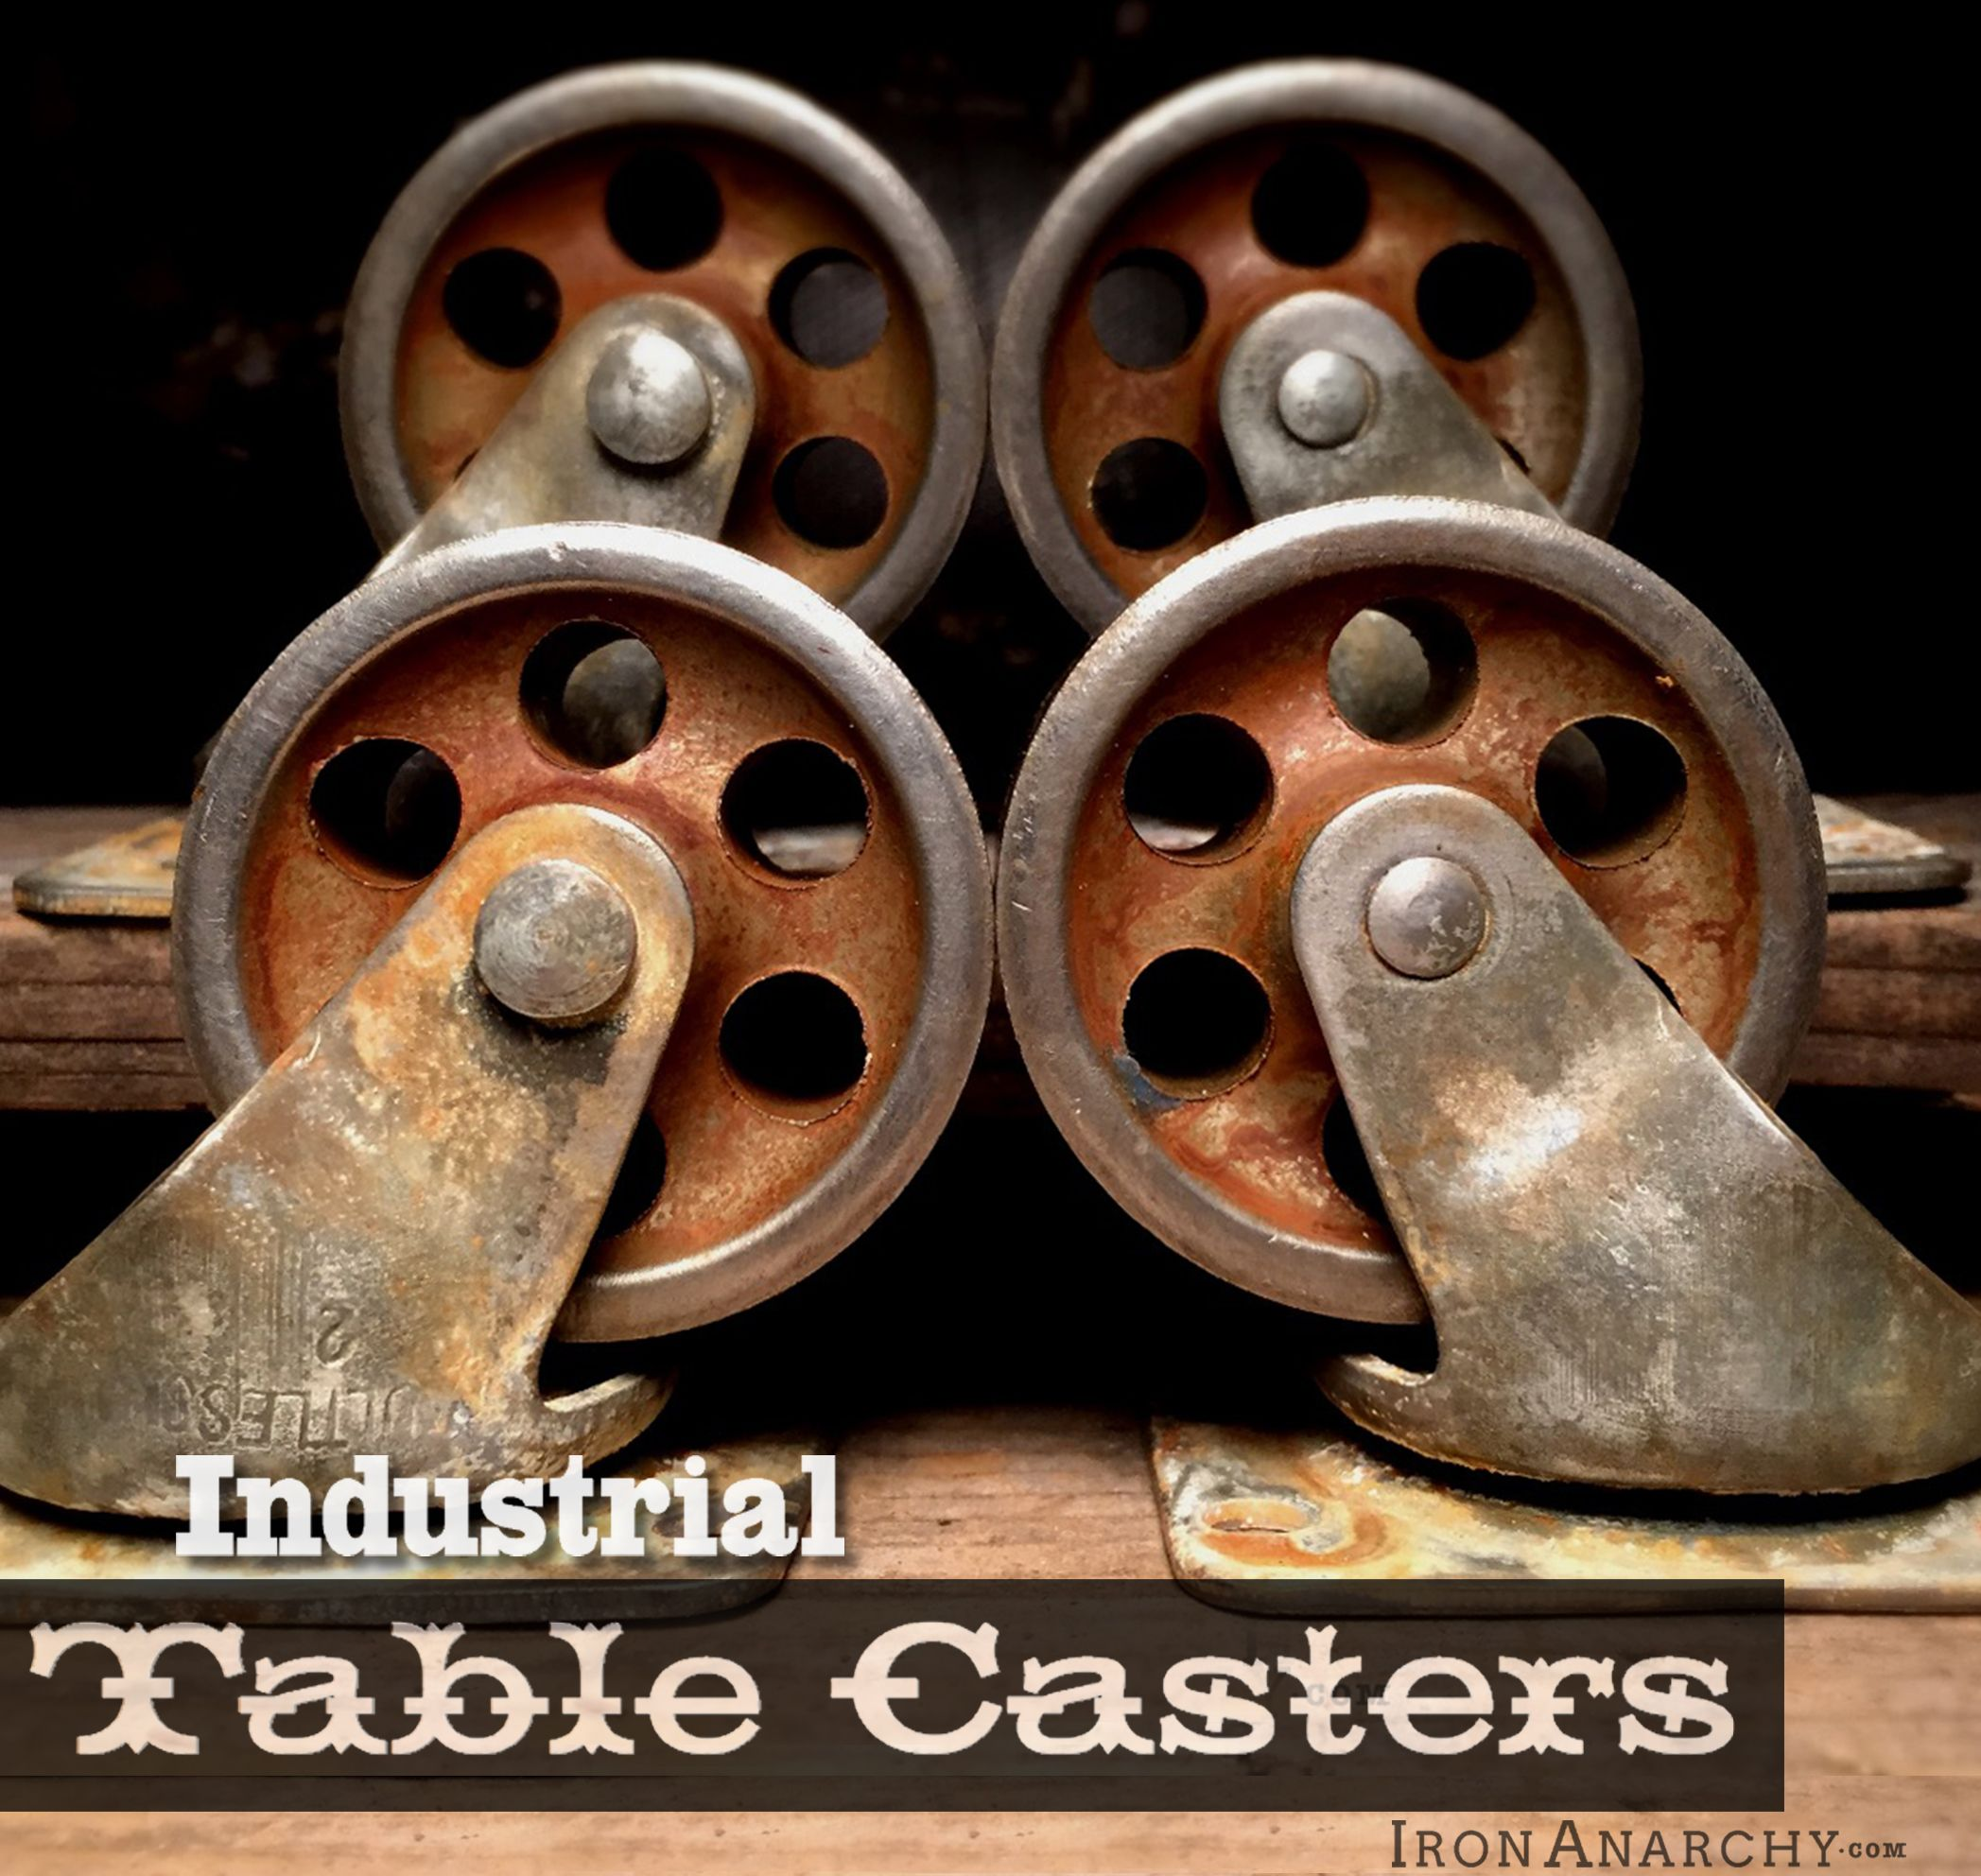 Vintage Industrial Casters From Ironanarchy Com Industrial